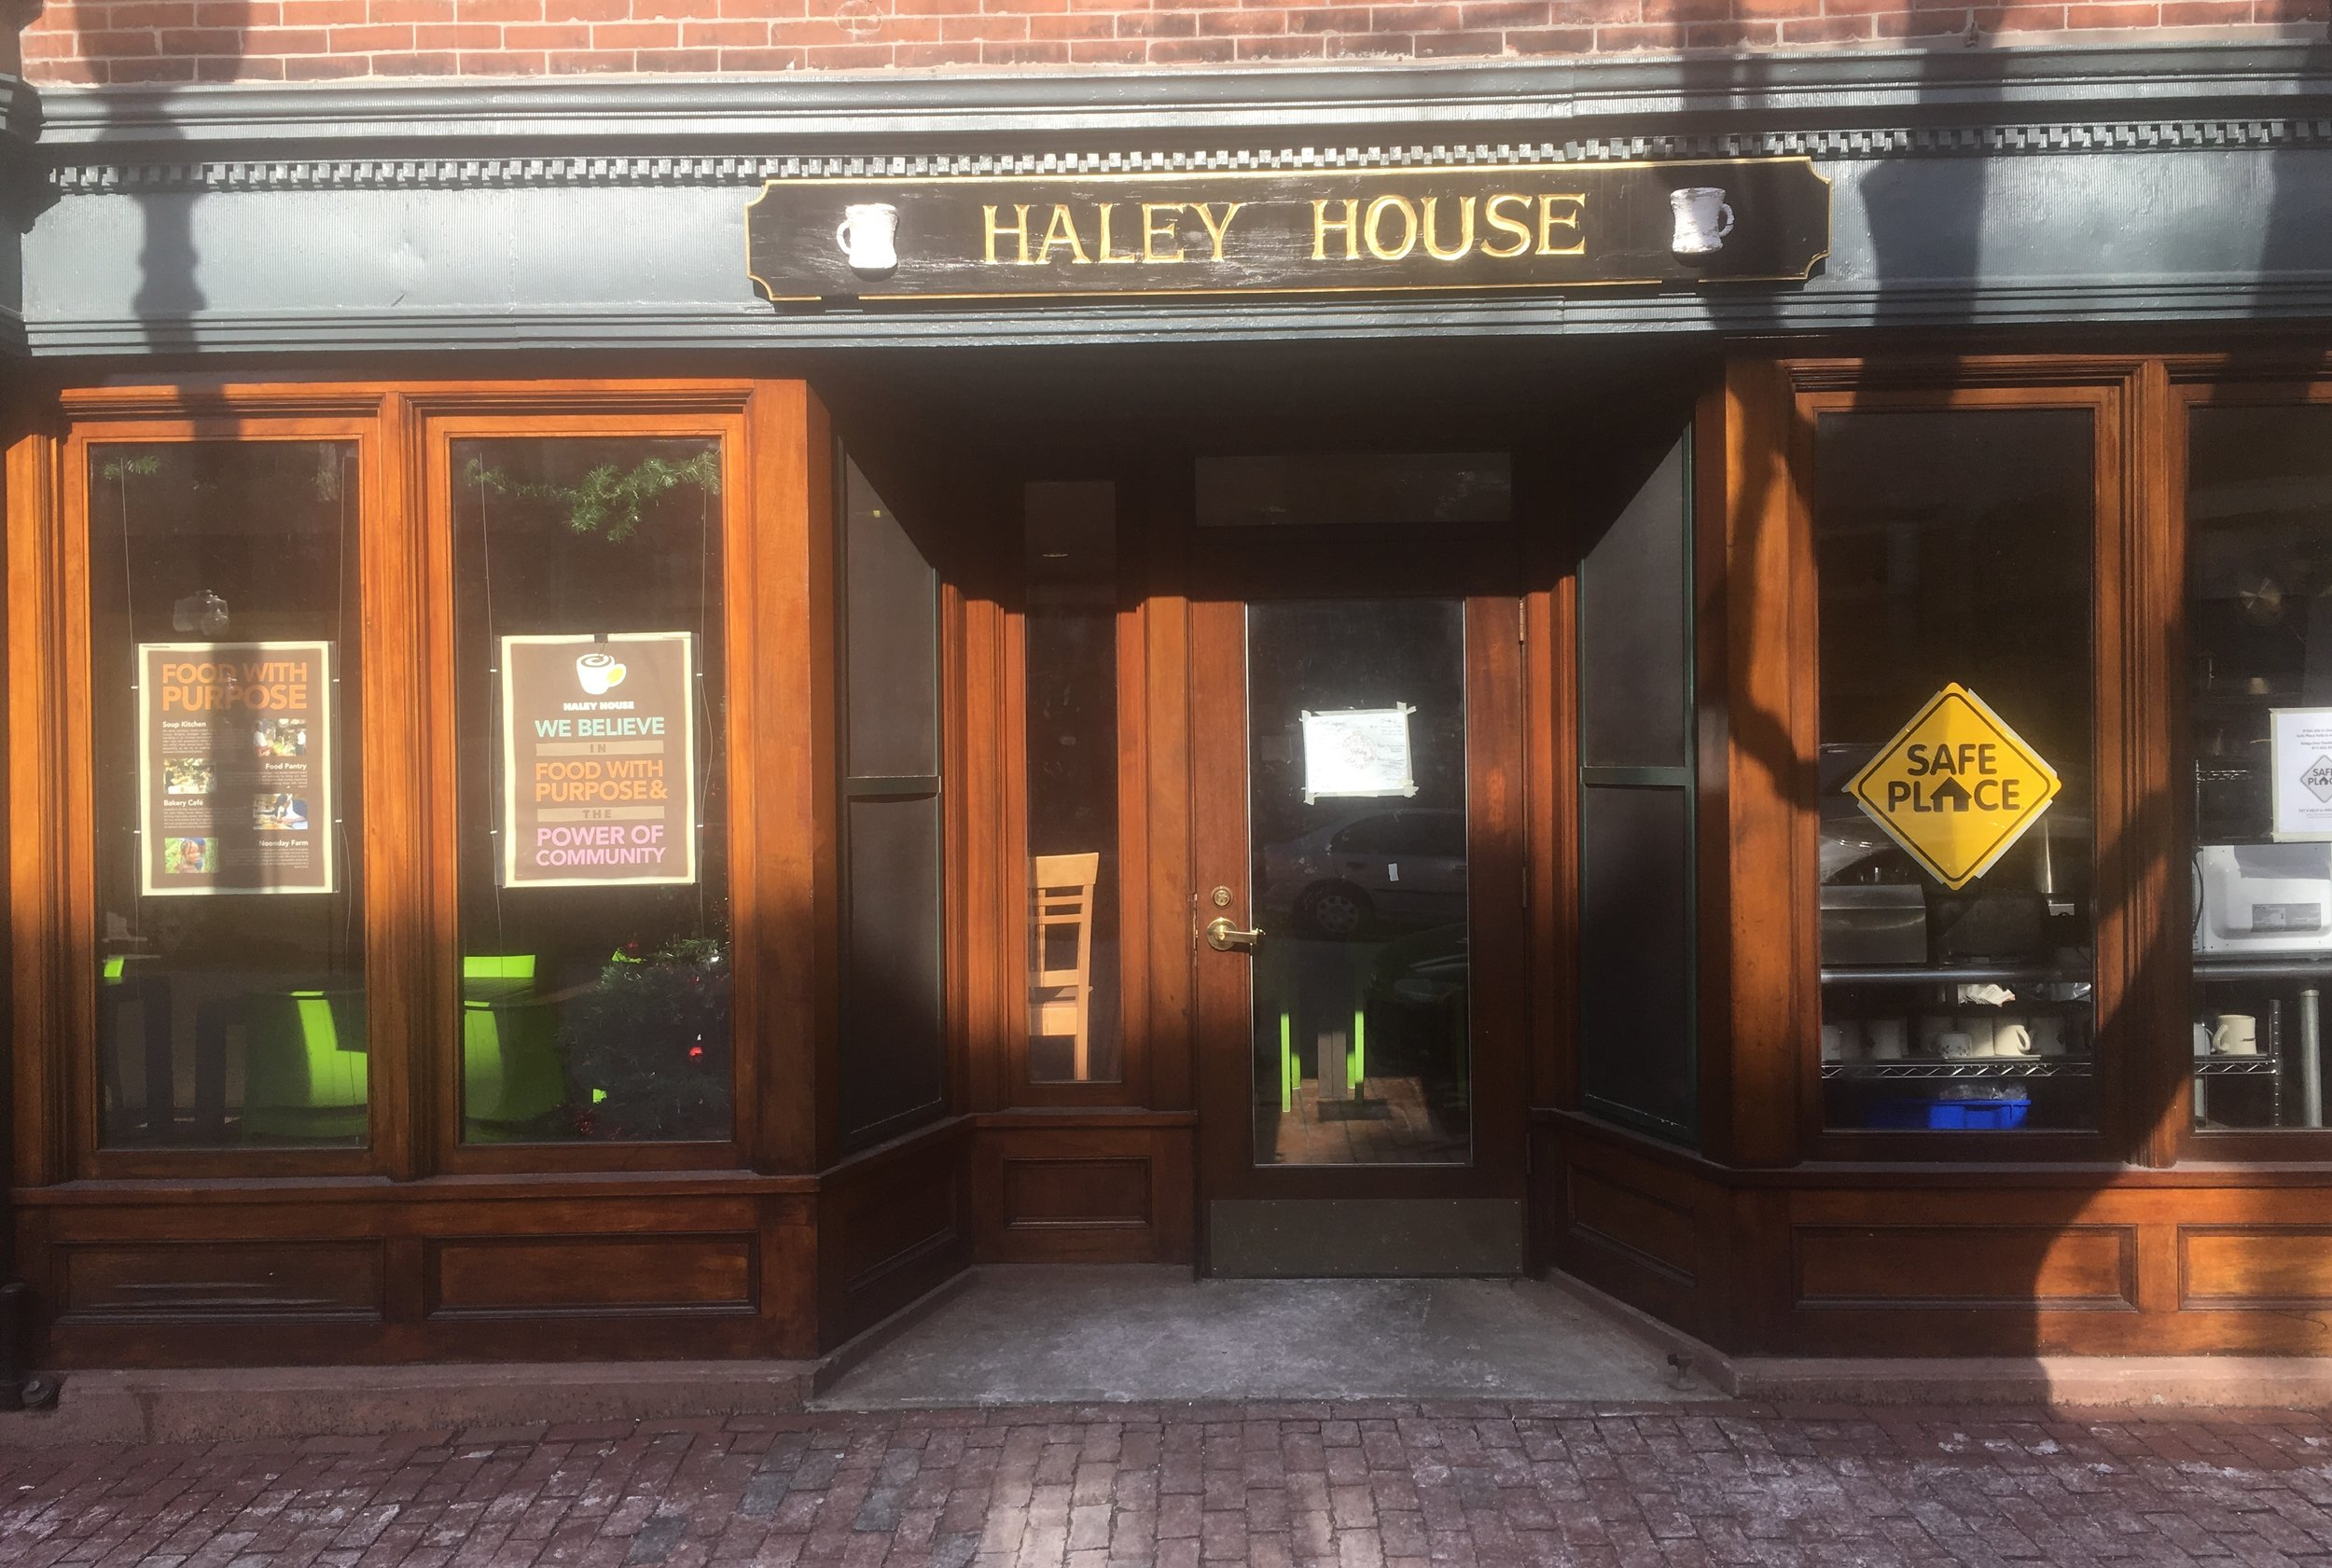 Safe Place signage indicates that Haley House is a key resource for any underage youth in need.